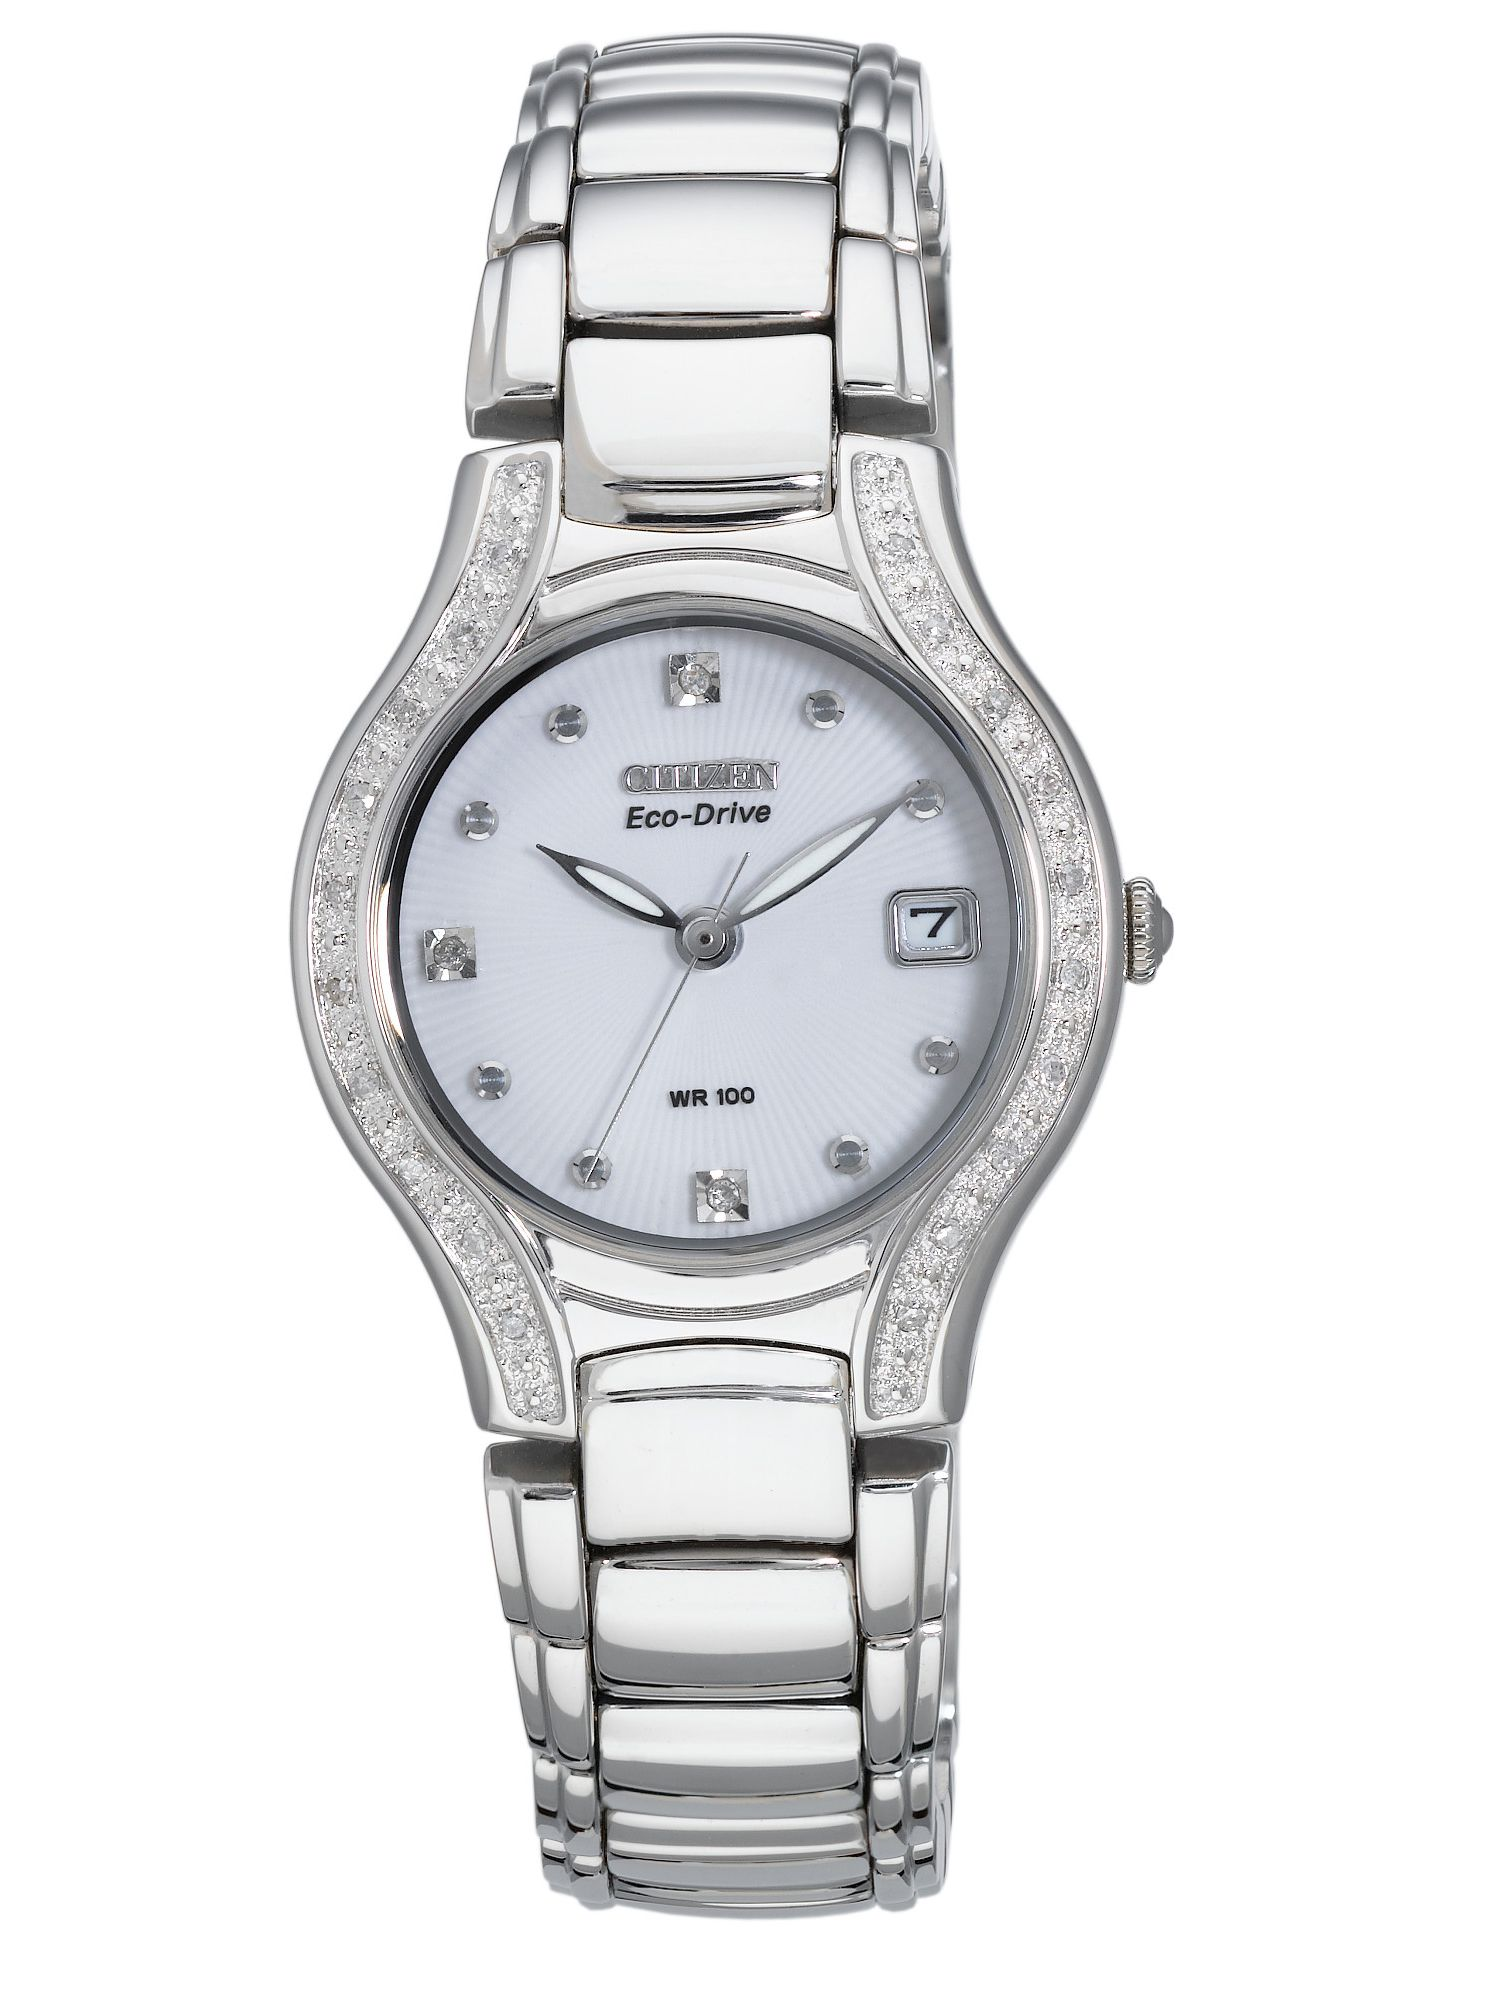 Eco-drive modeba 23 diamonds silver ladies watch